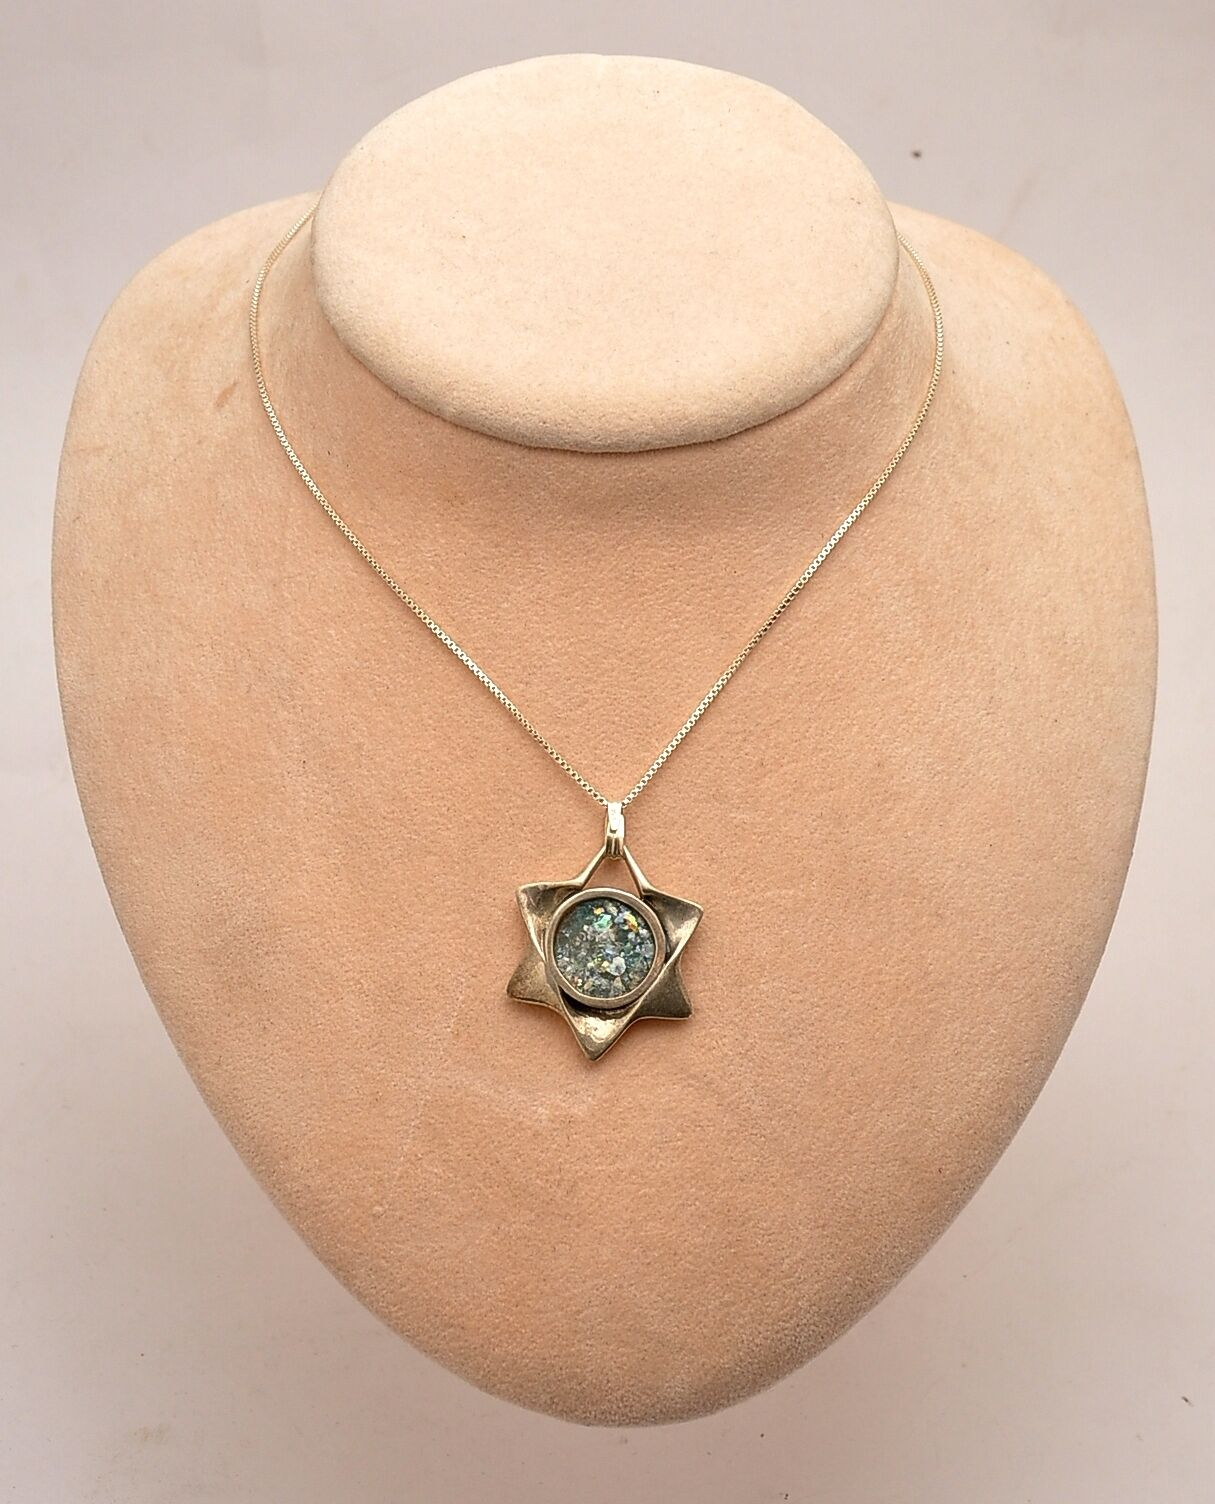 Roman Glass Magen David In Necklace Sterling Silver 925